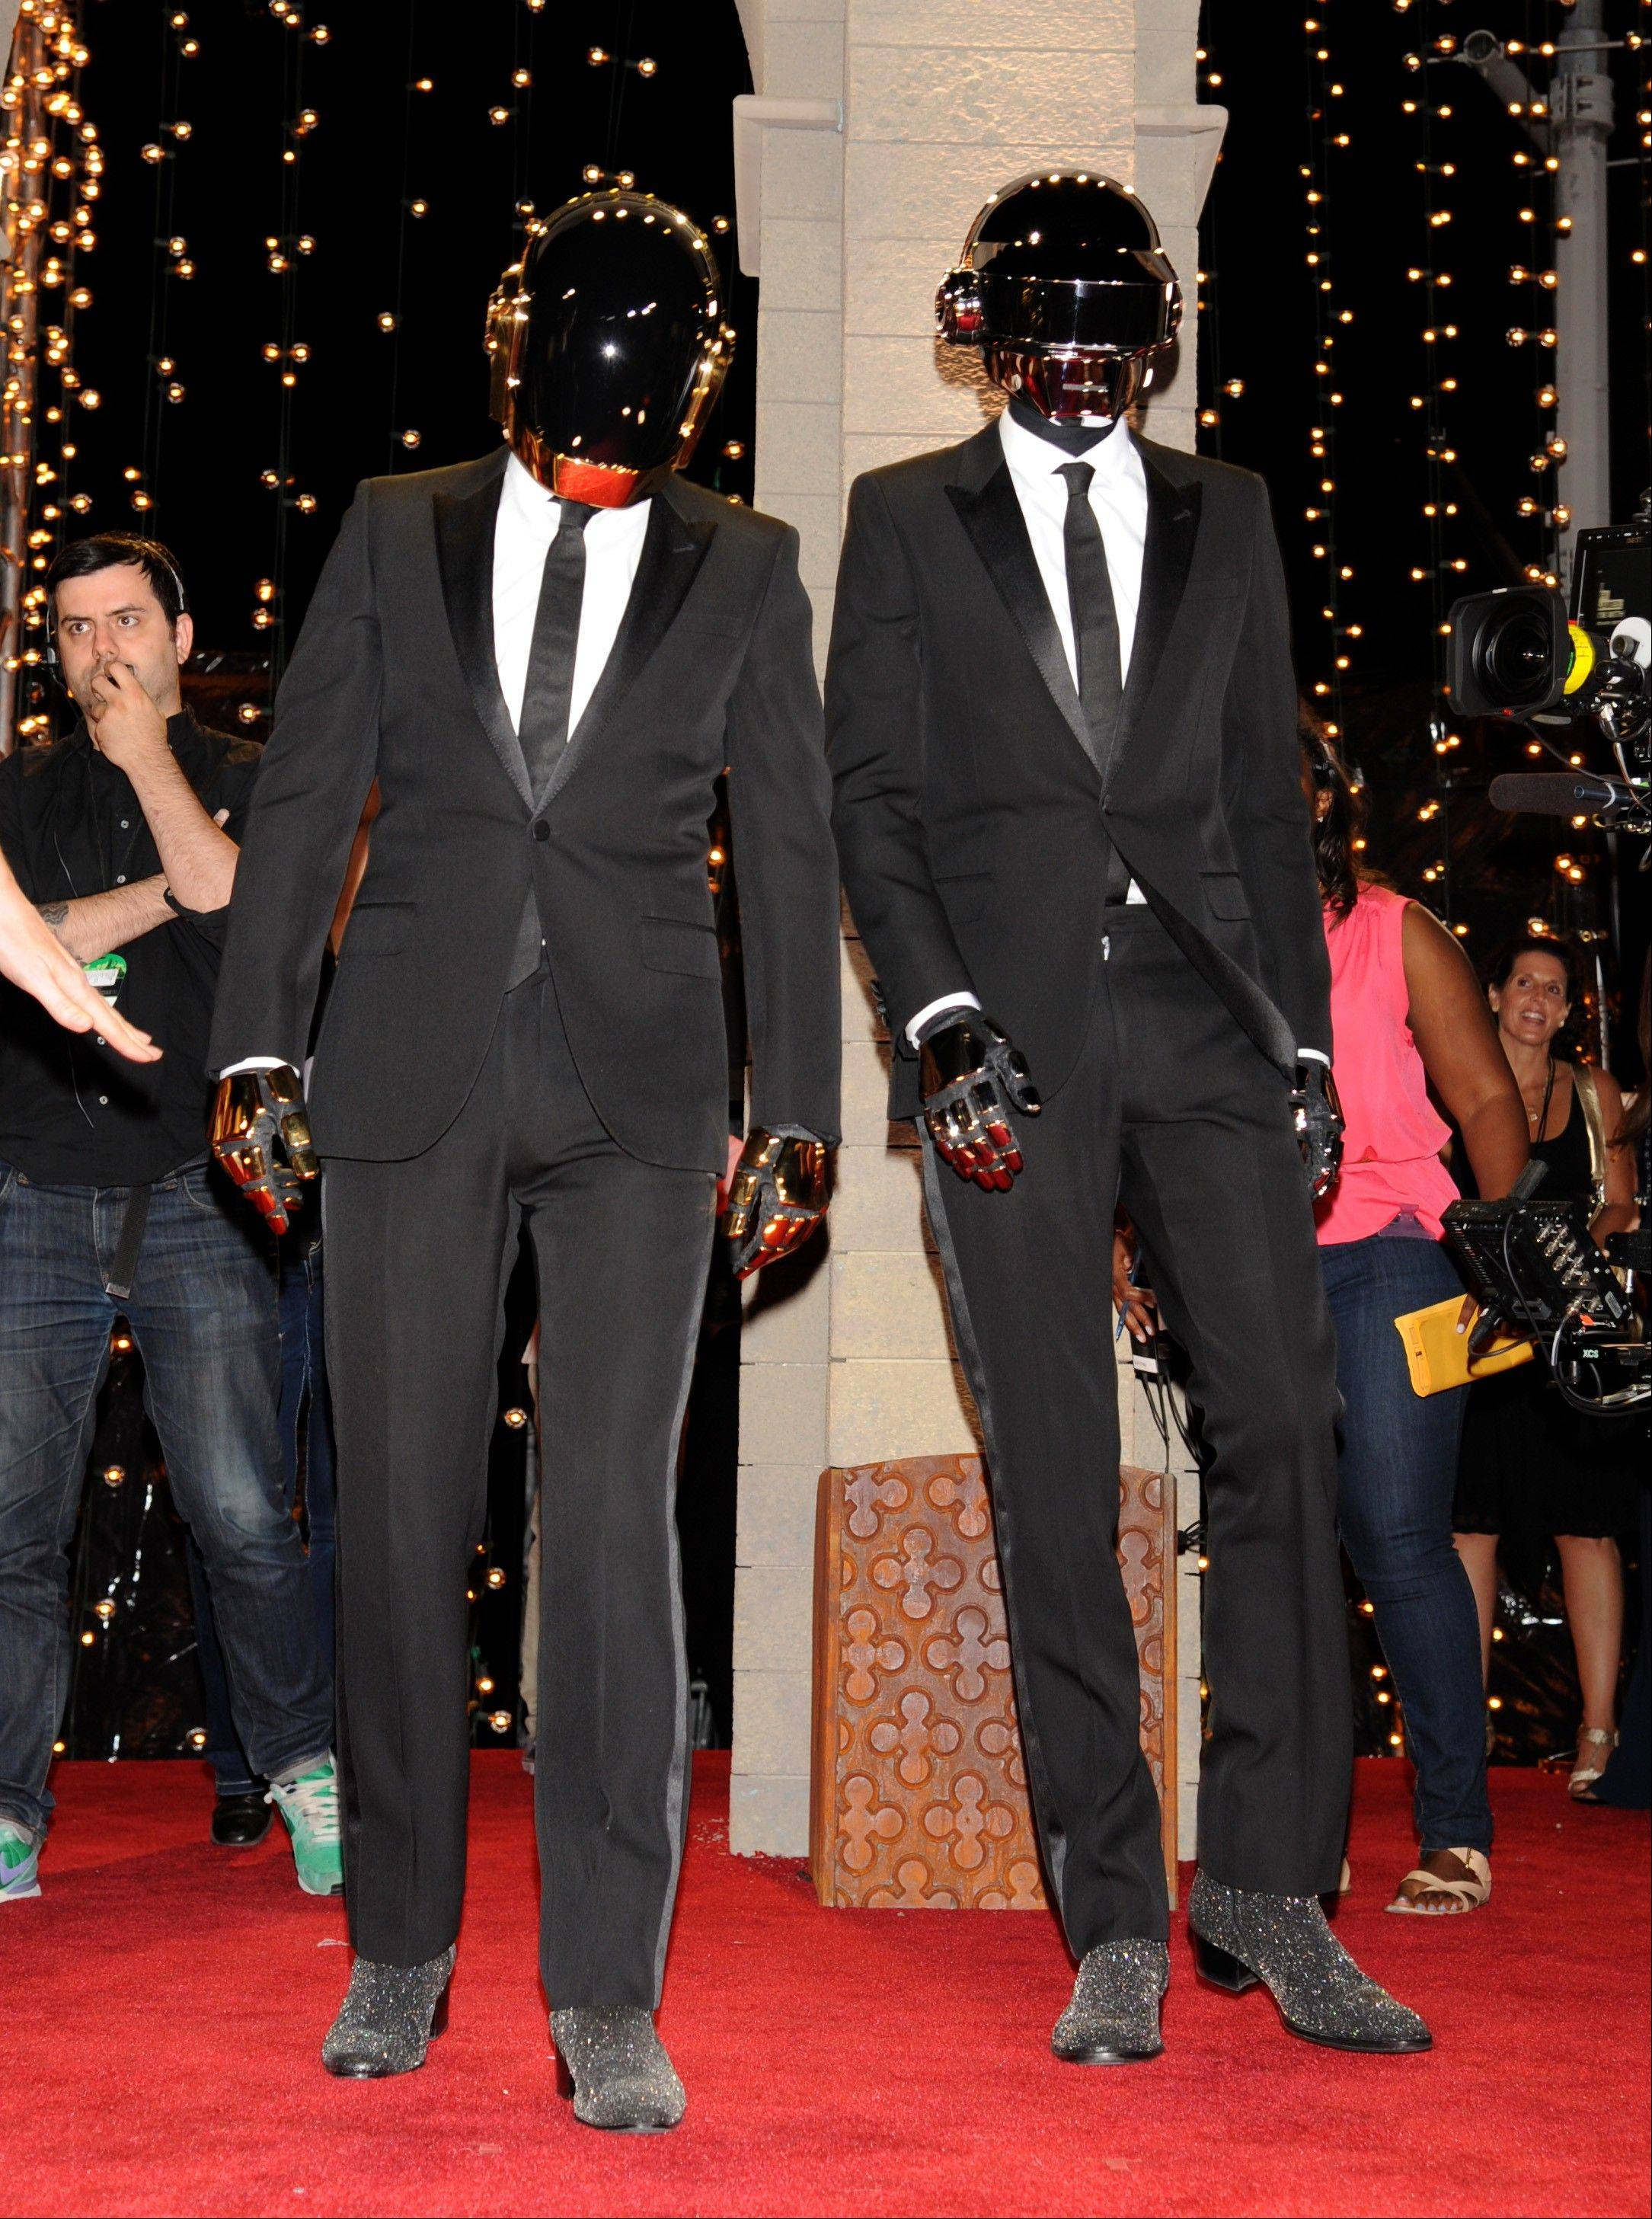 Daft Punk arrives at the MTV Video Music Awards on Sunday, Aug. 25, 2013, at the Barclays Center in the Brooklyn borough of New York.